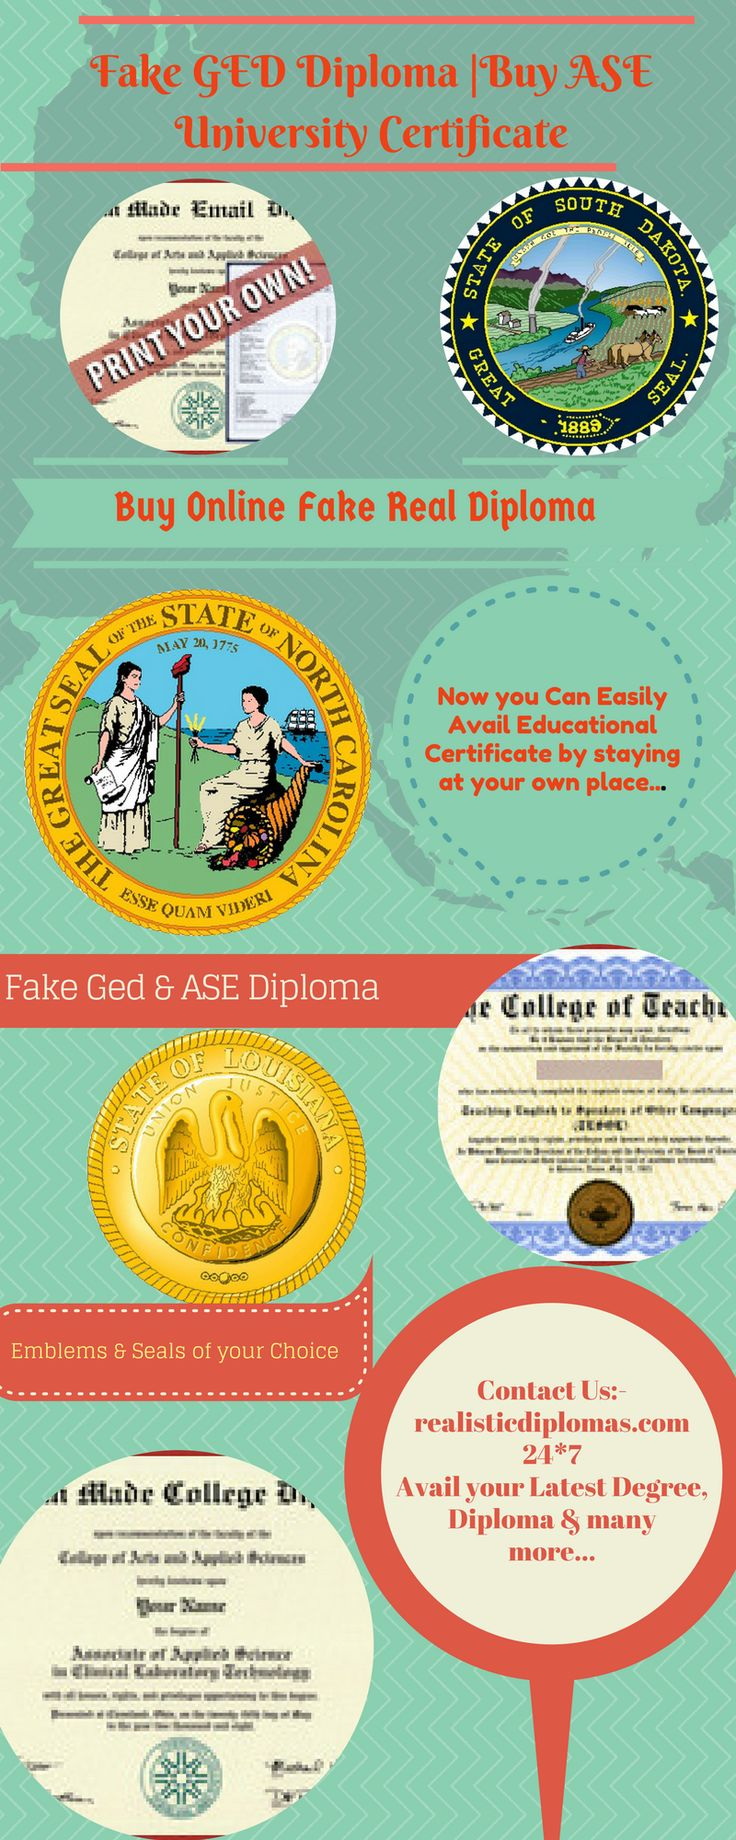 Get a realistic fake PhD degree, diplomas and transcripts with less cost! Realistic Diplomas have many phony diploma designs as well as novelty college designs according to your need.